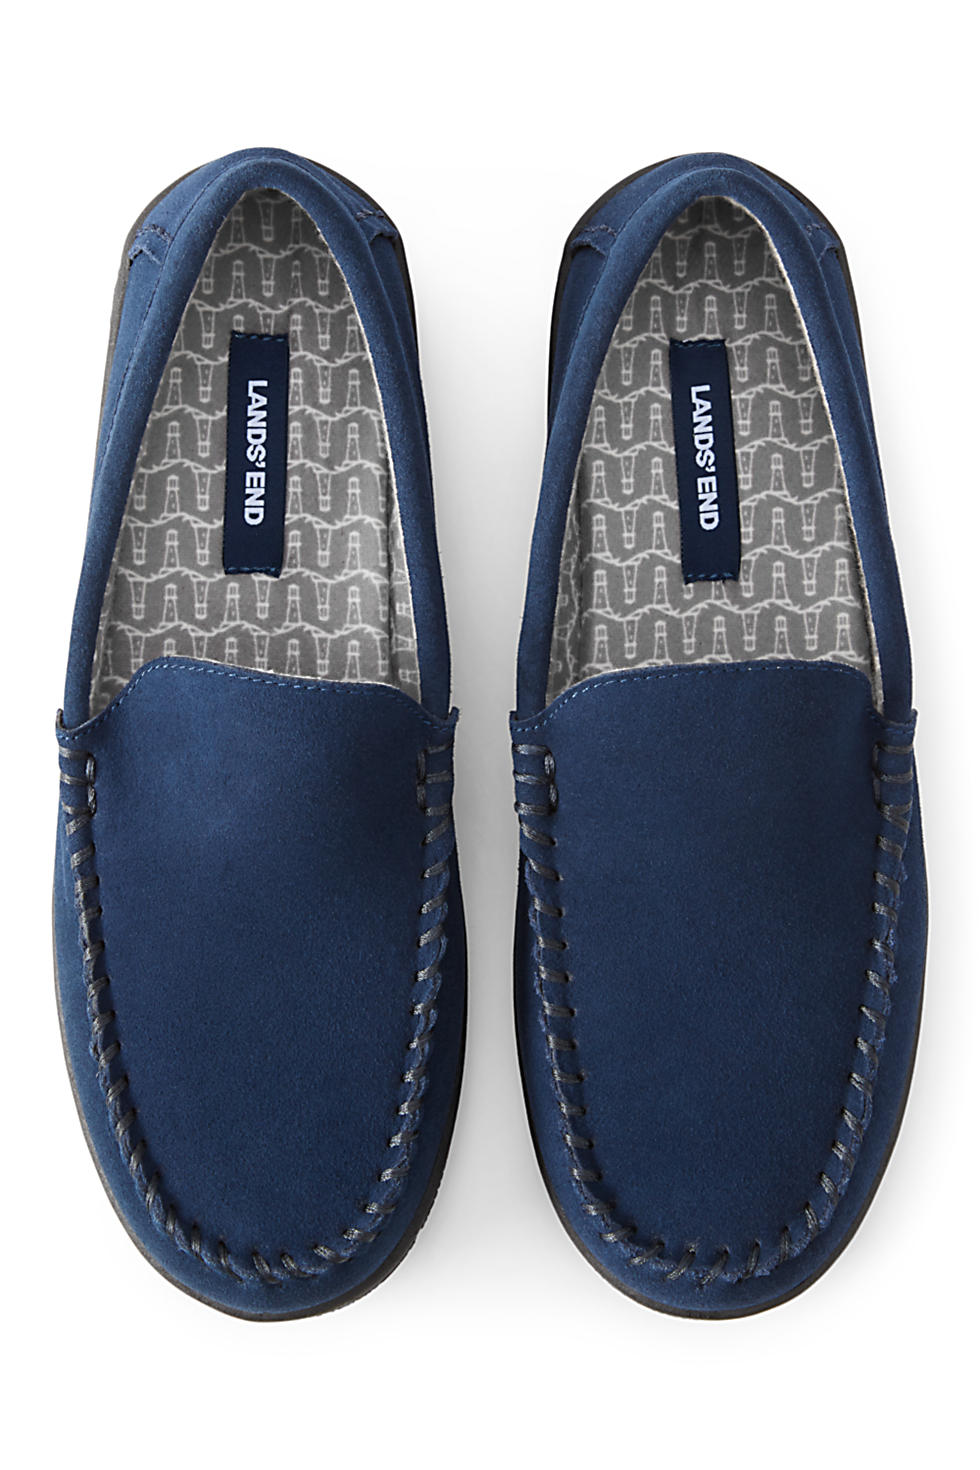 Lands' End Men's Suede Flannel Lined Moccasin Slippers